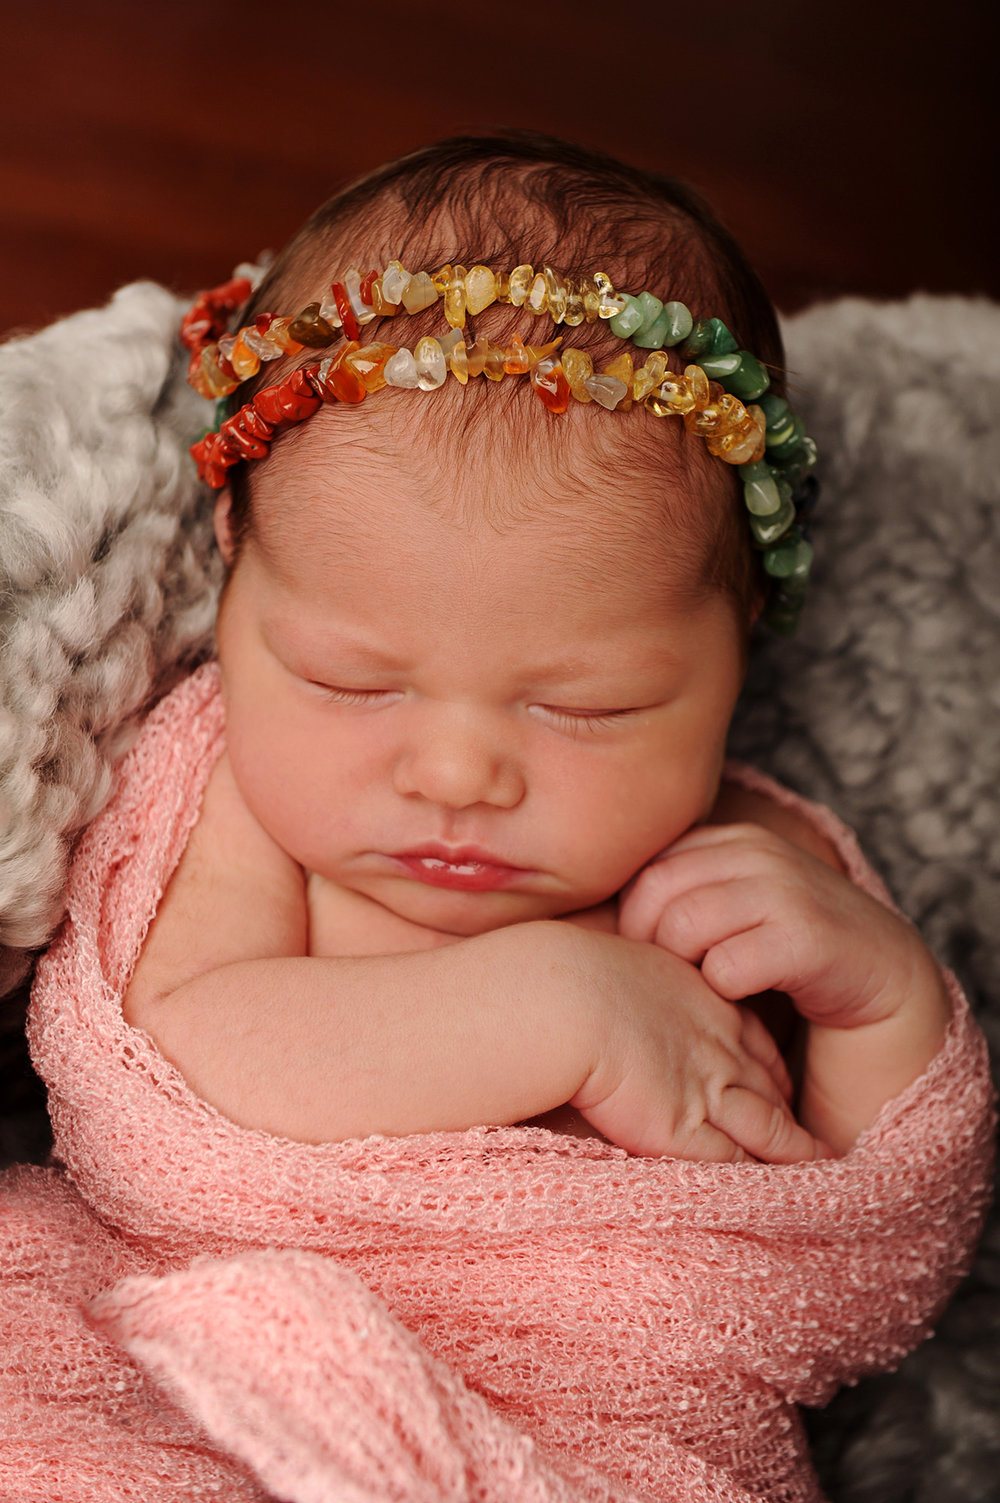 Newborn girl wrapped in pink blanket_ShuteNB_8281.jpg